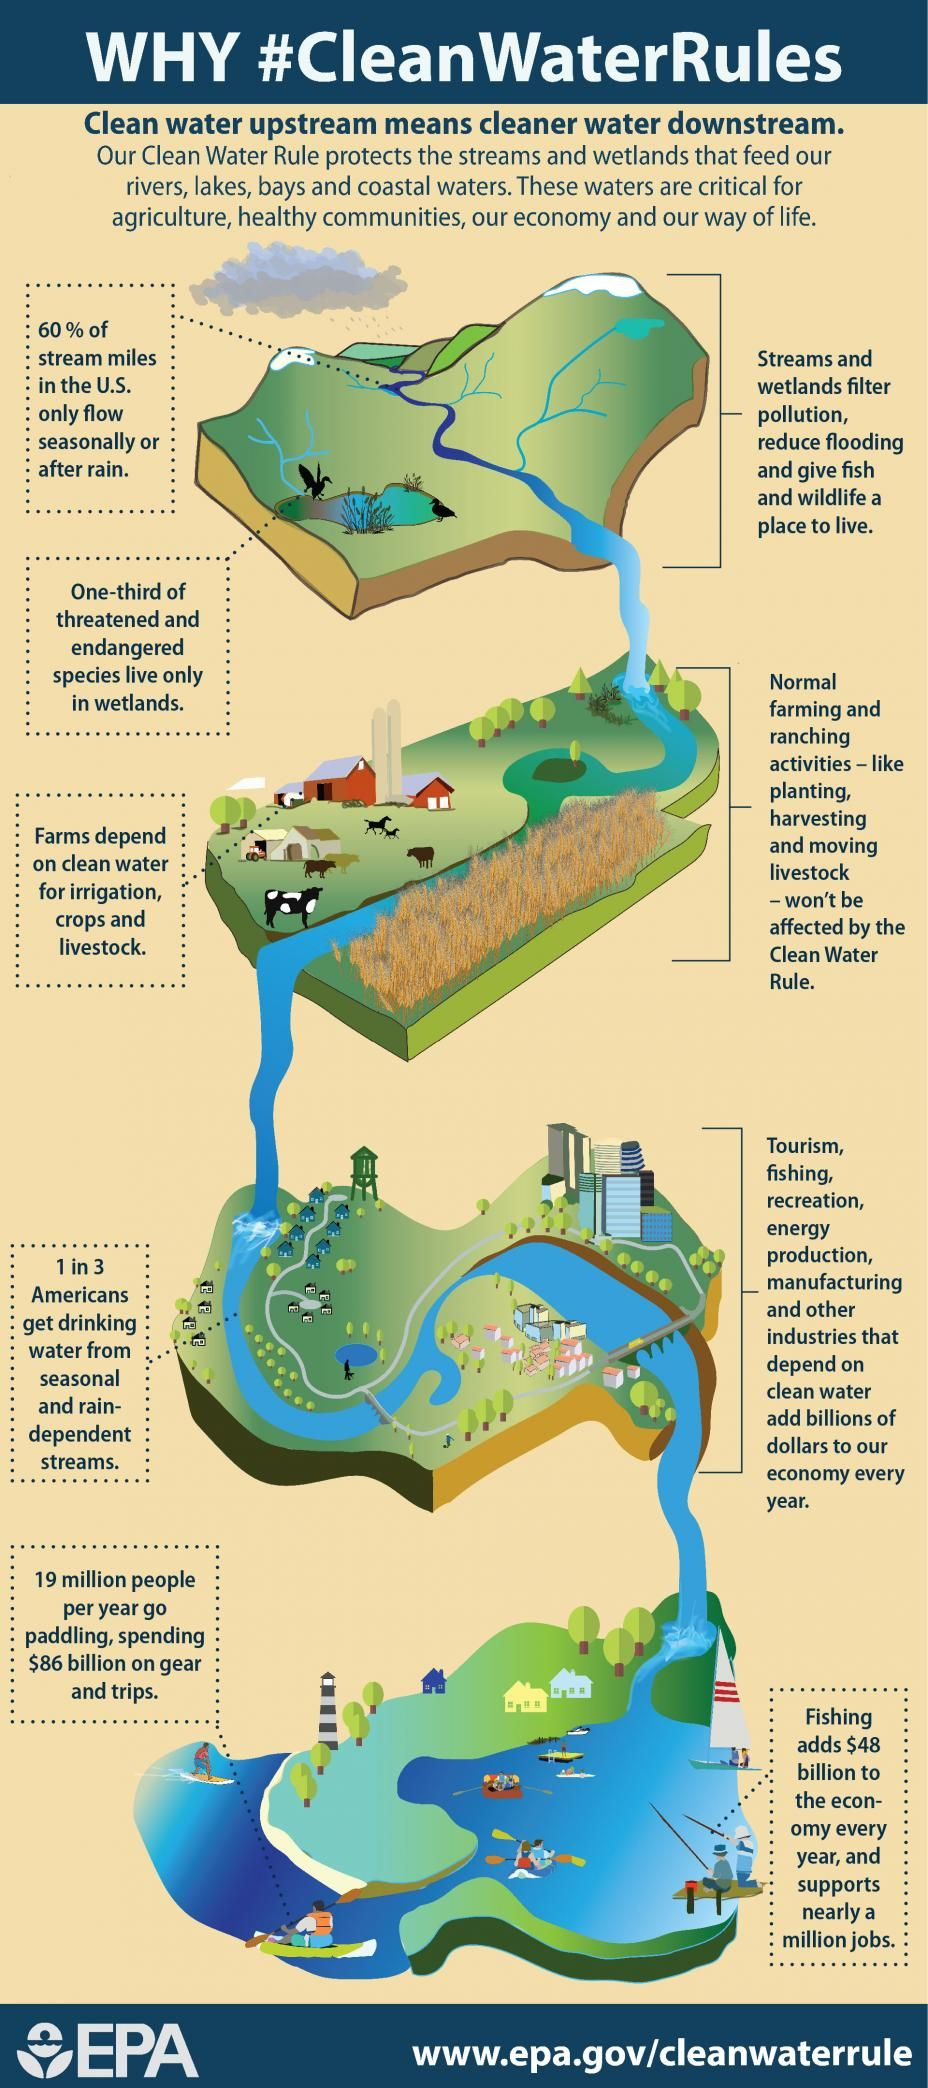 An Infographic Detailing How The Clean Water Rule Protects The